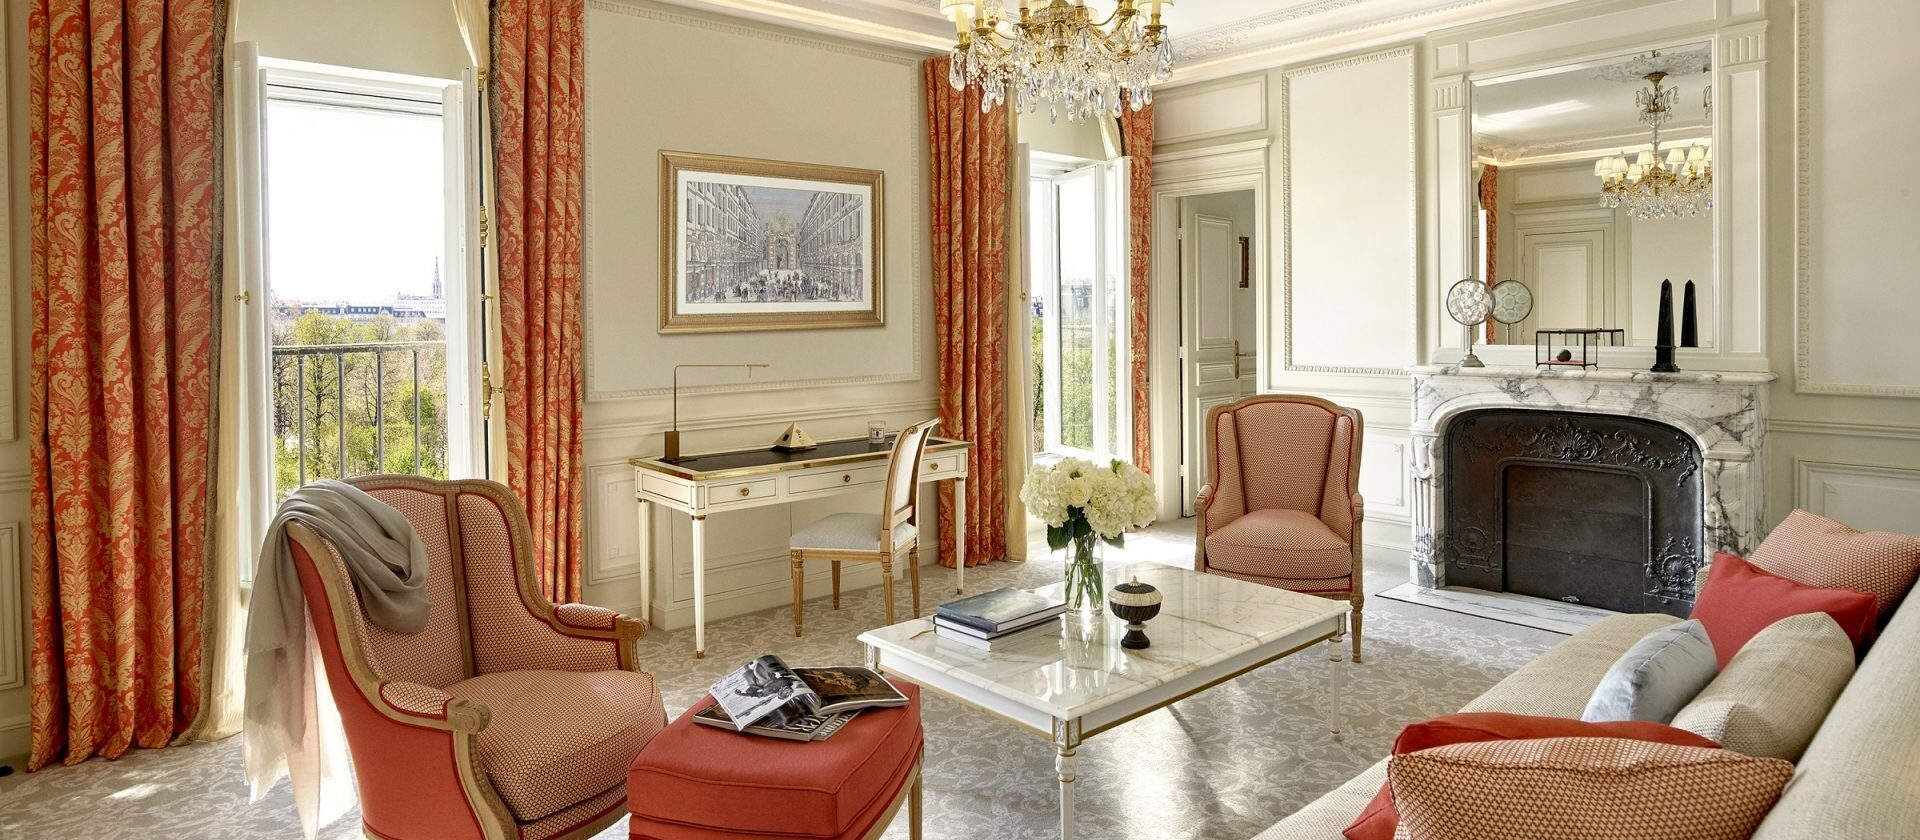 Executive Suite, Jardin des Tuileries view - Le Meurice | Dorchester ...